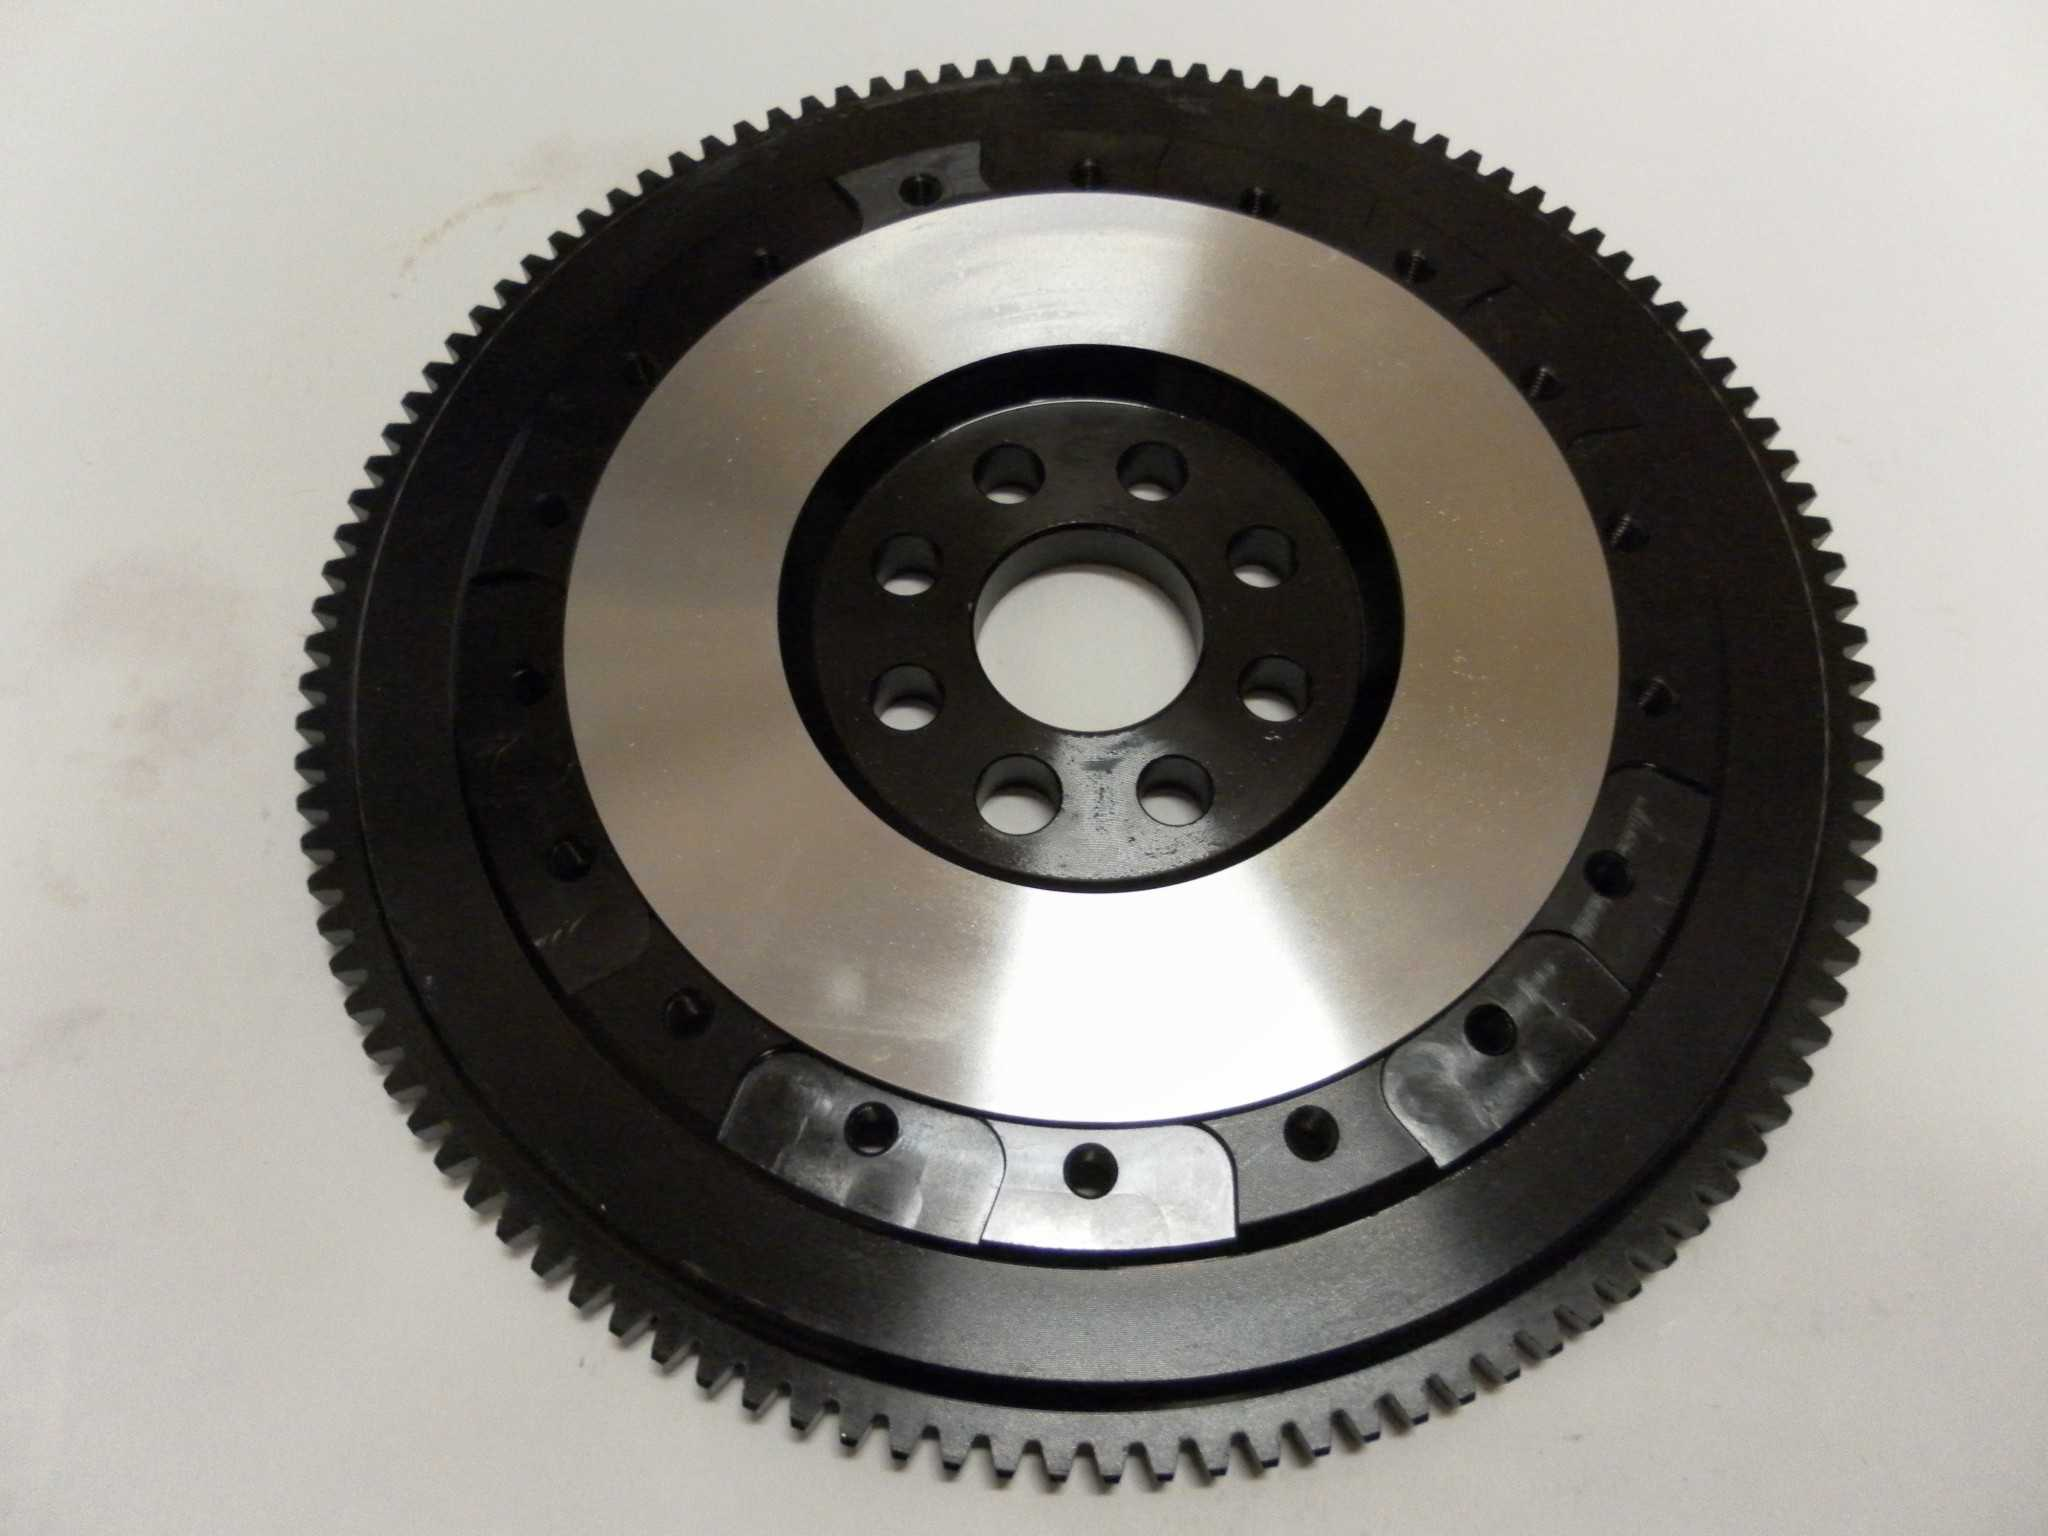 BMW M50, M52, M54, S50, S54 Flywheel 184mm / 7,25""